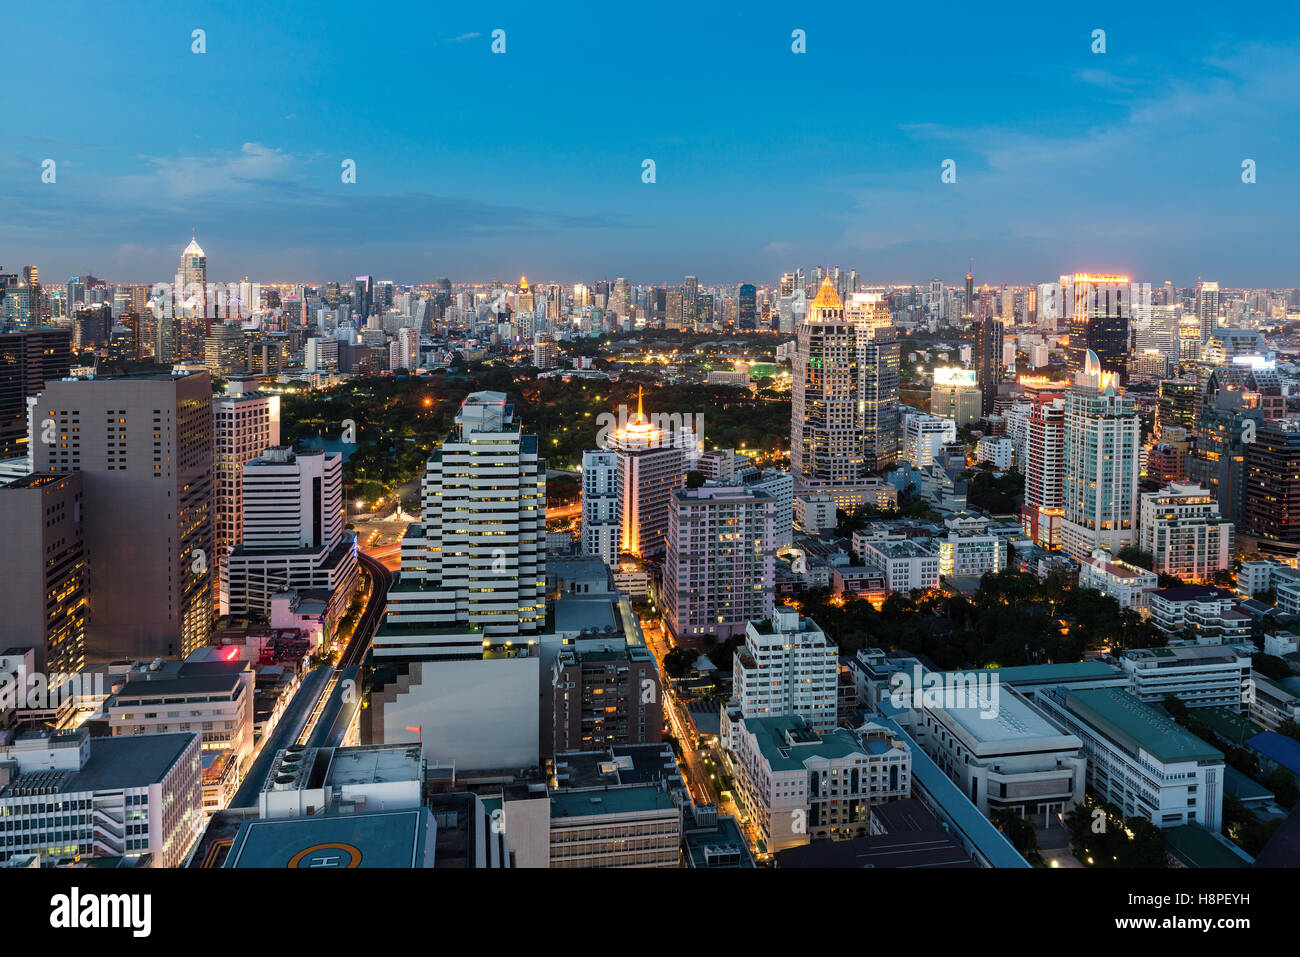 Bangkok night view with skyscraper in business district in Bangkok Thailand. - Stock Image